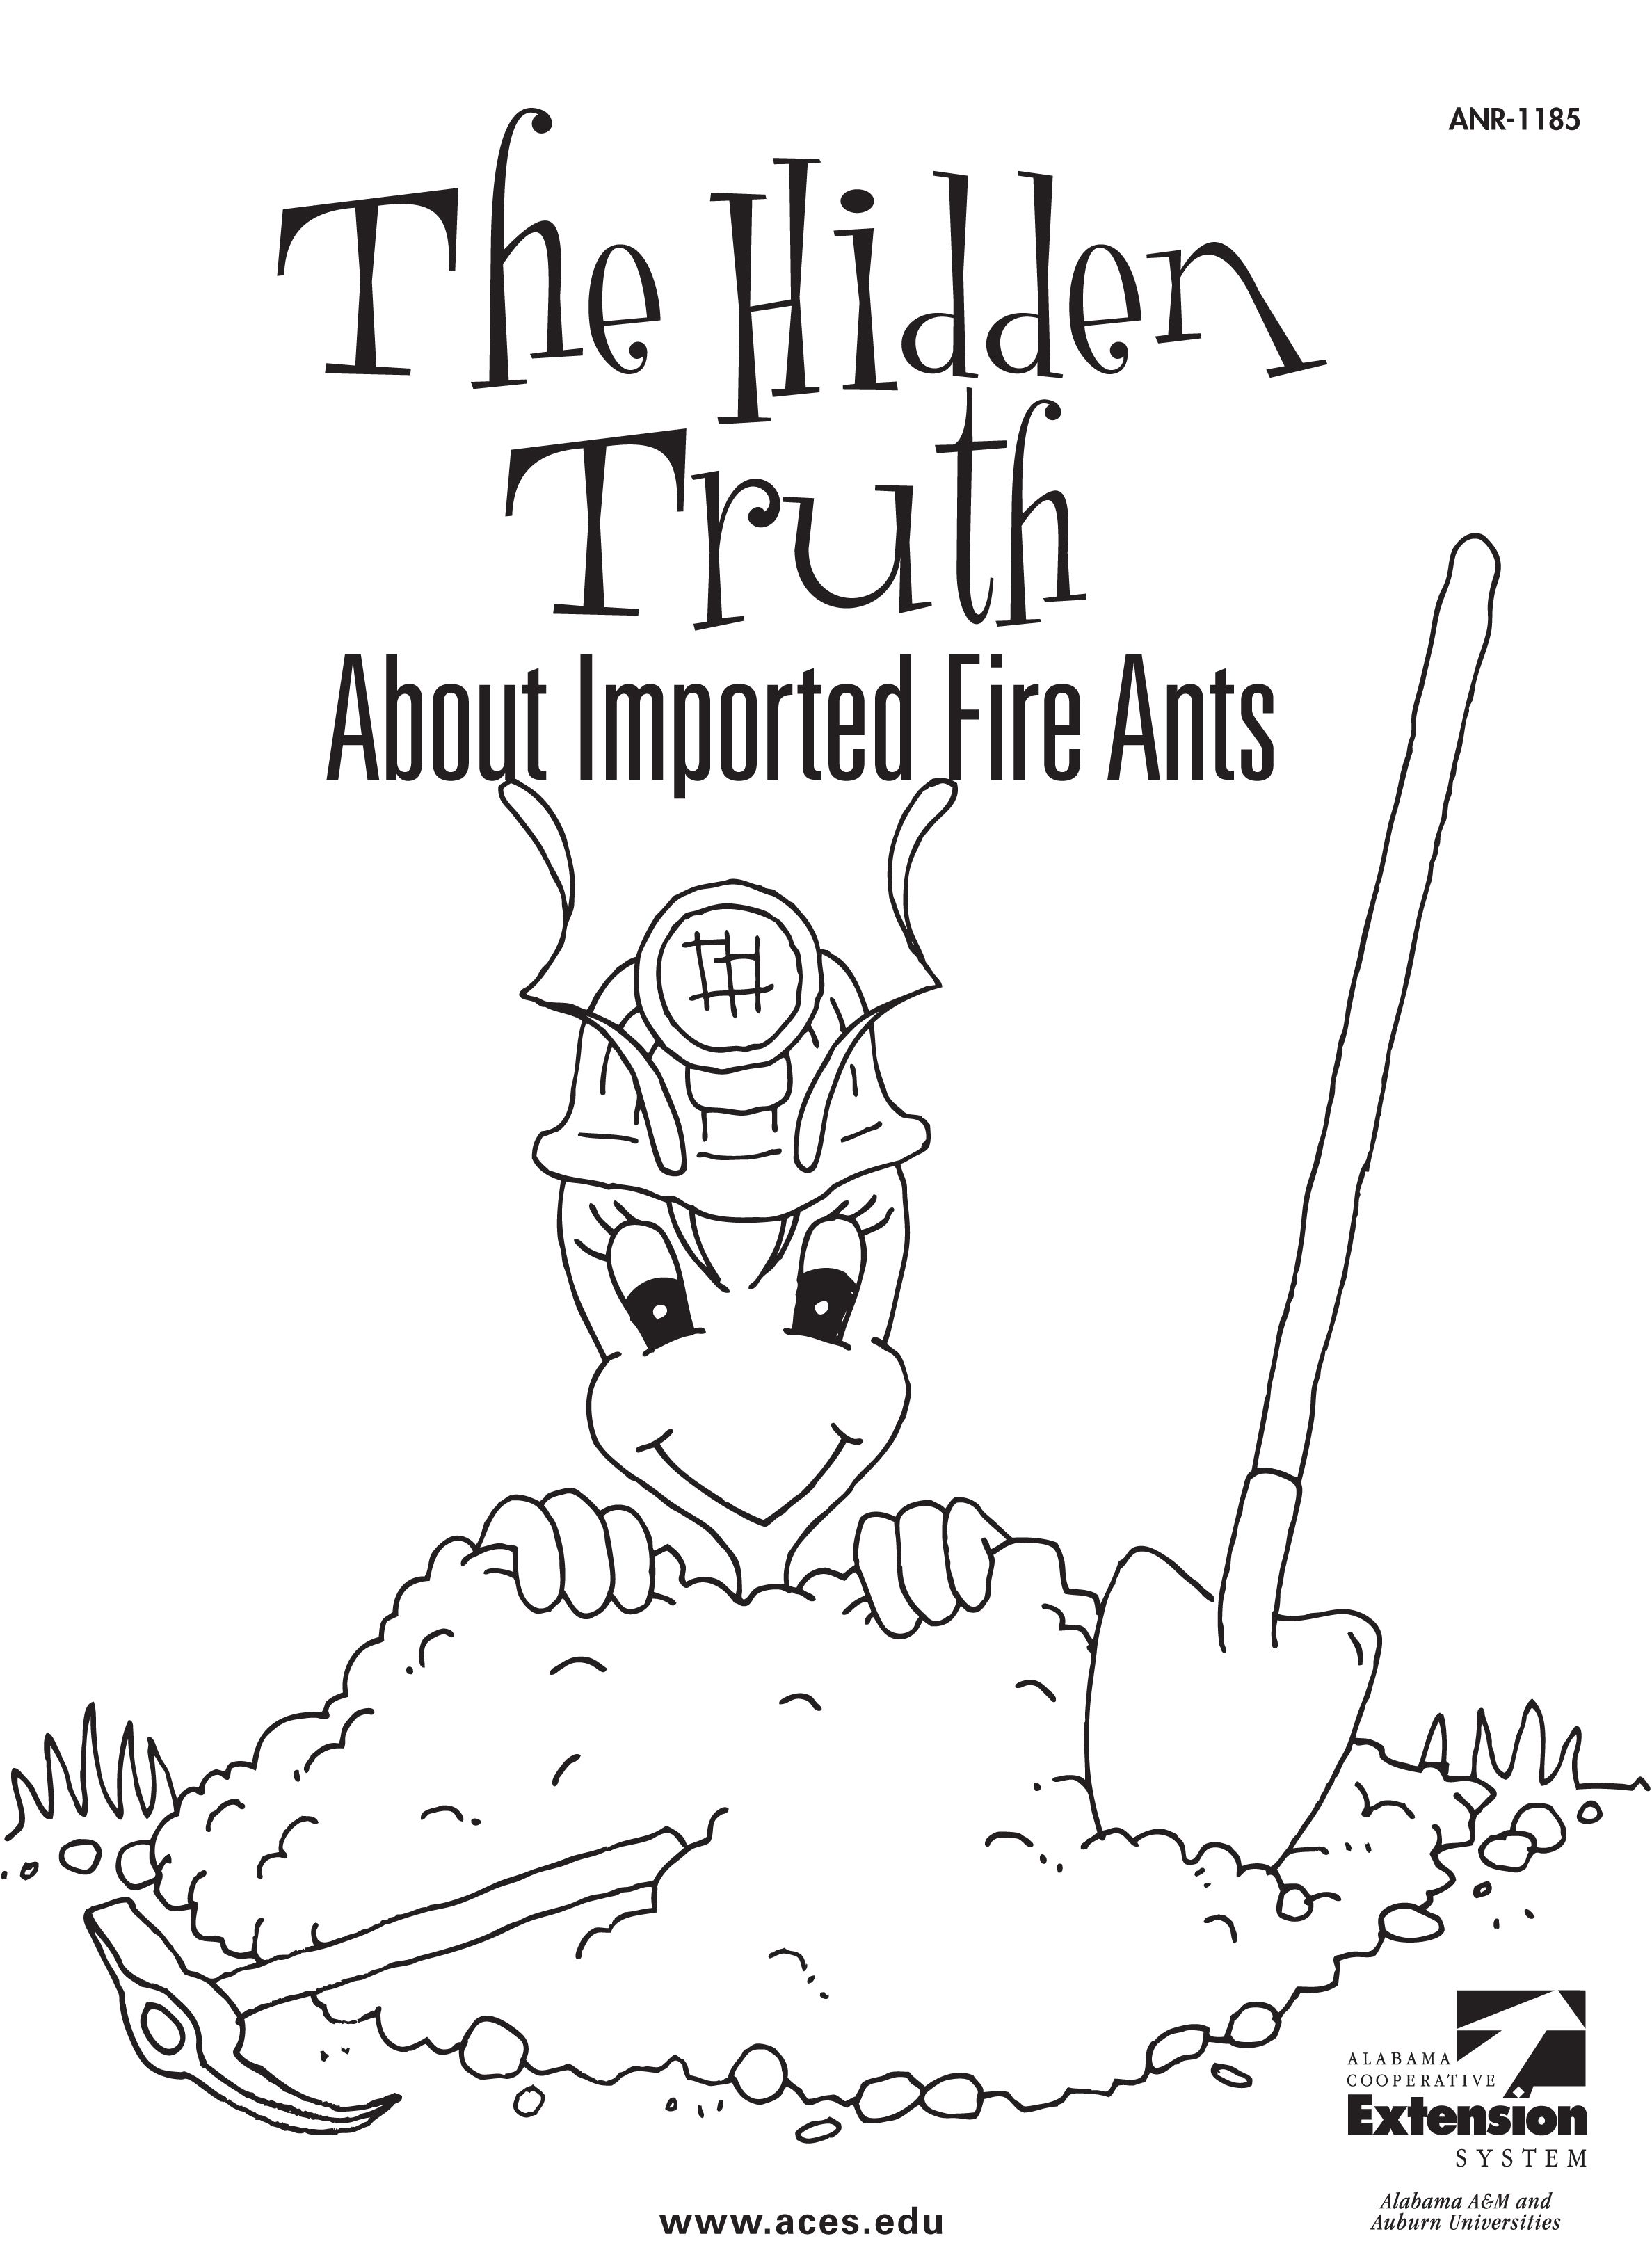 fire ant coloring page httpwwwacesedupubs